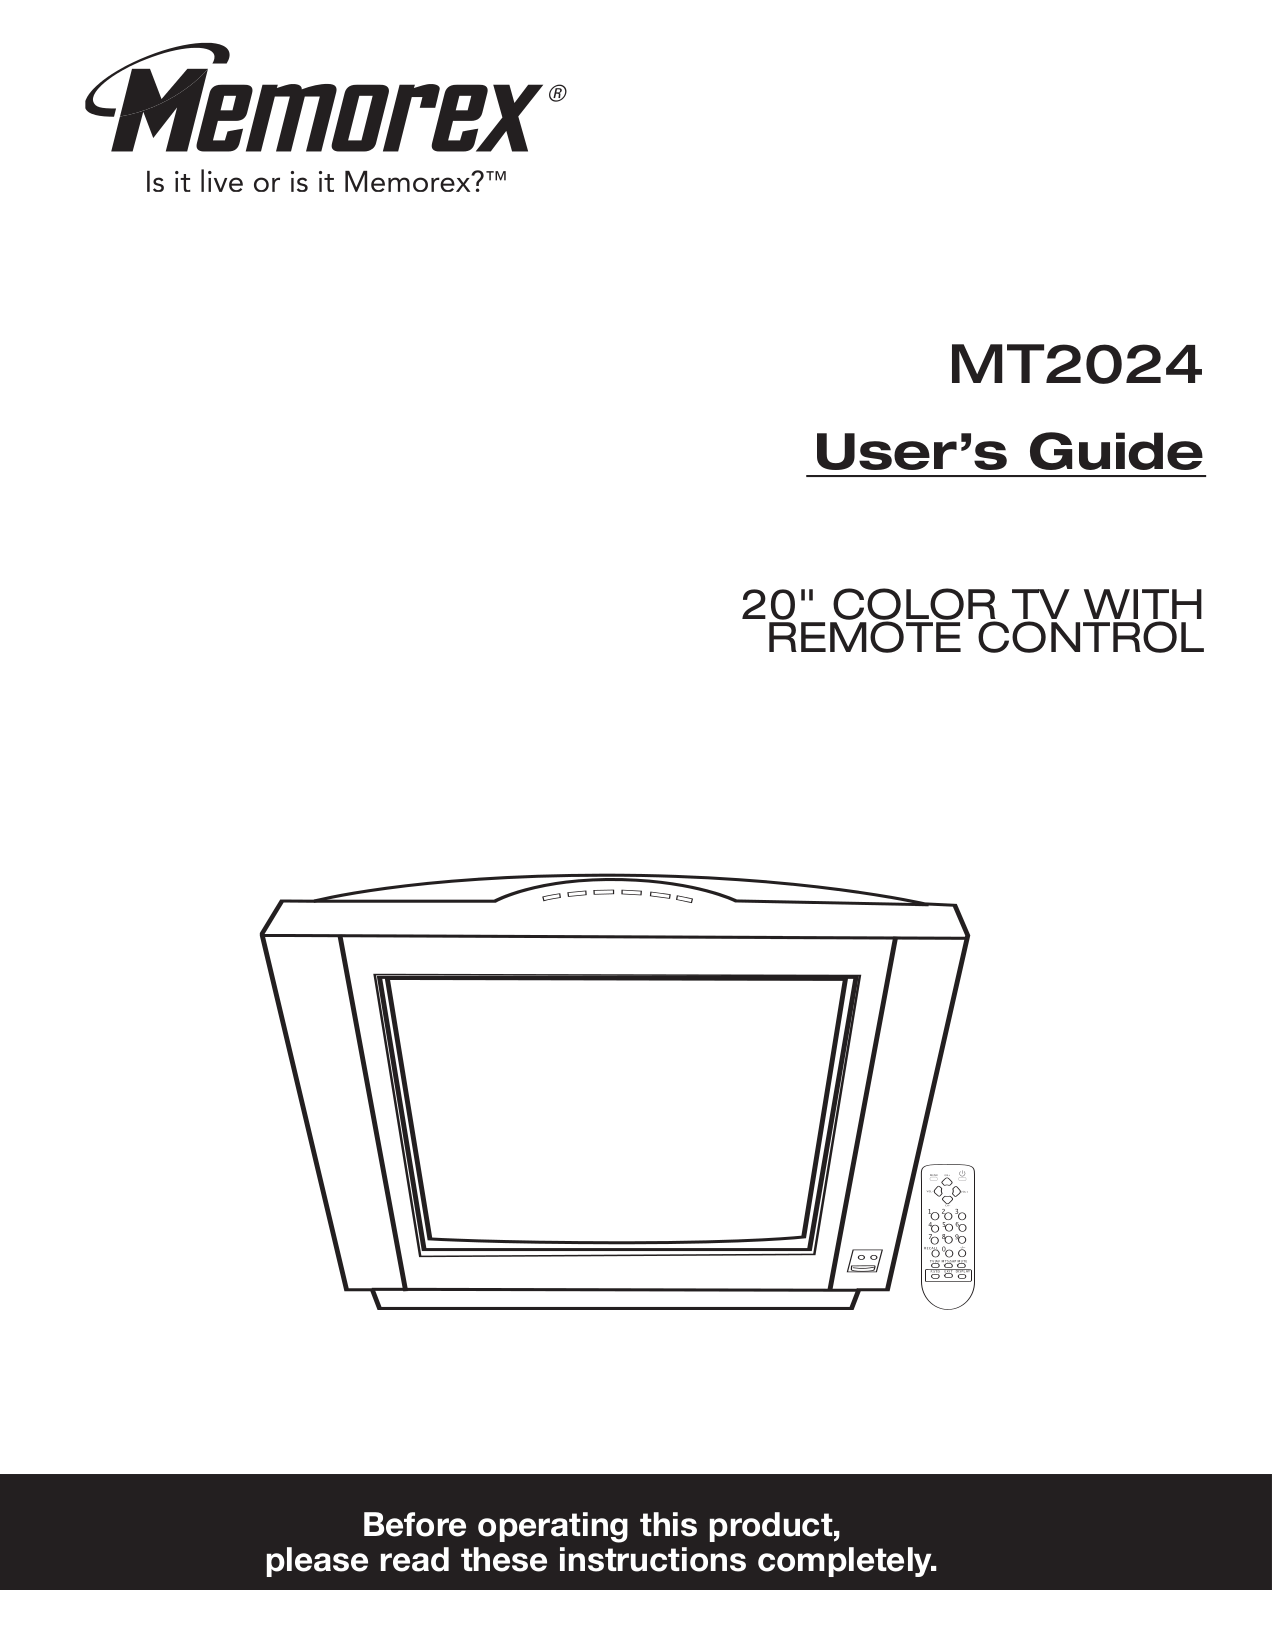 Memorex 3202 3223 Wiring Diagramwiring Downloadable Diagram 1966 Ford Mustang Mt2024 8 2 05pdf 0 Diagrams At